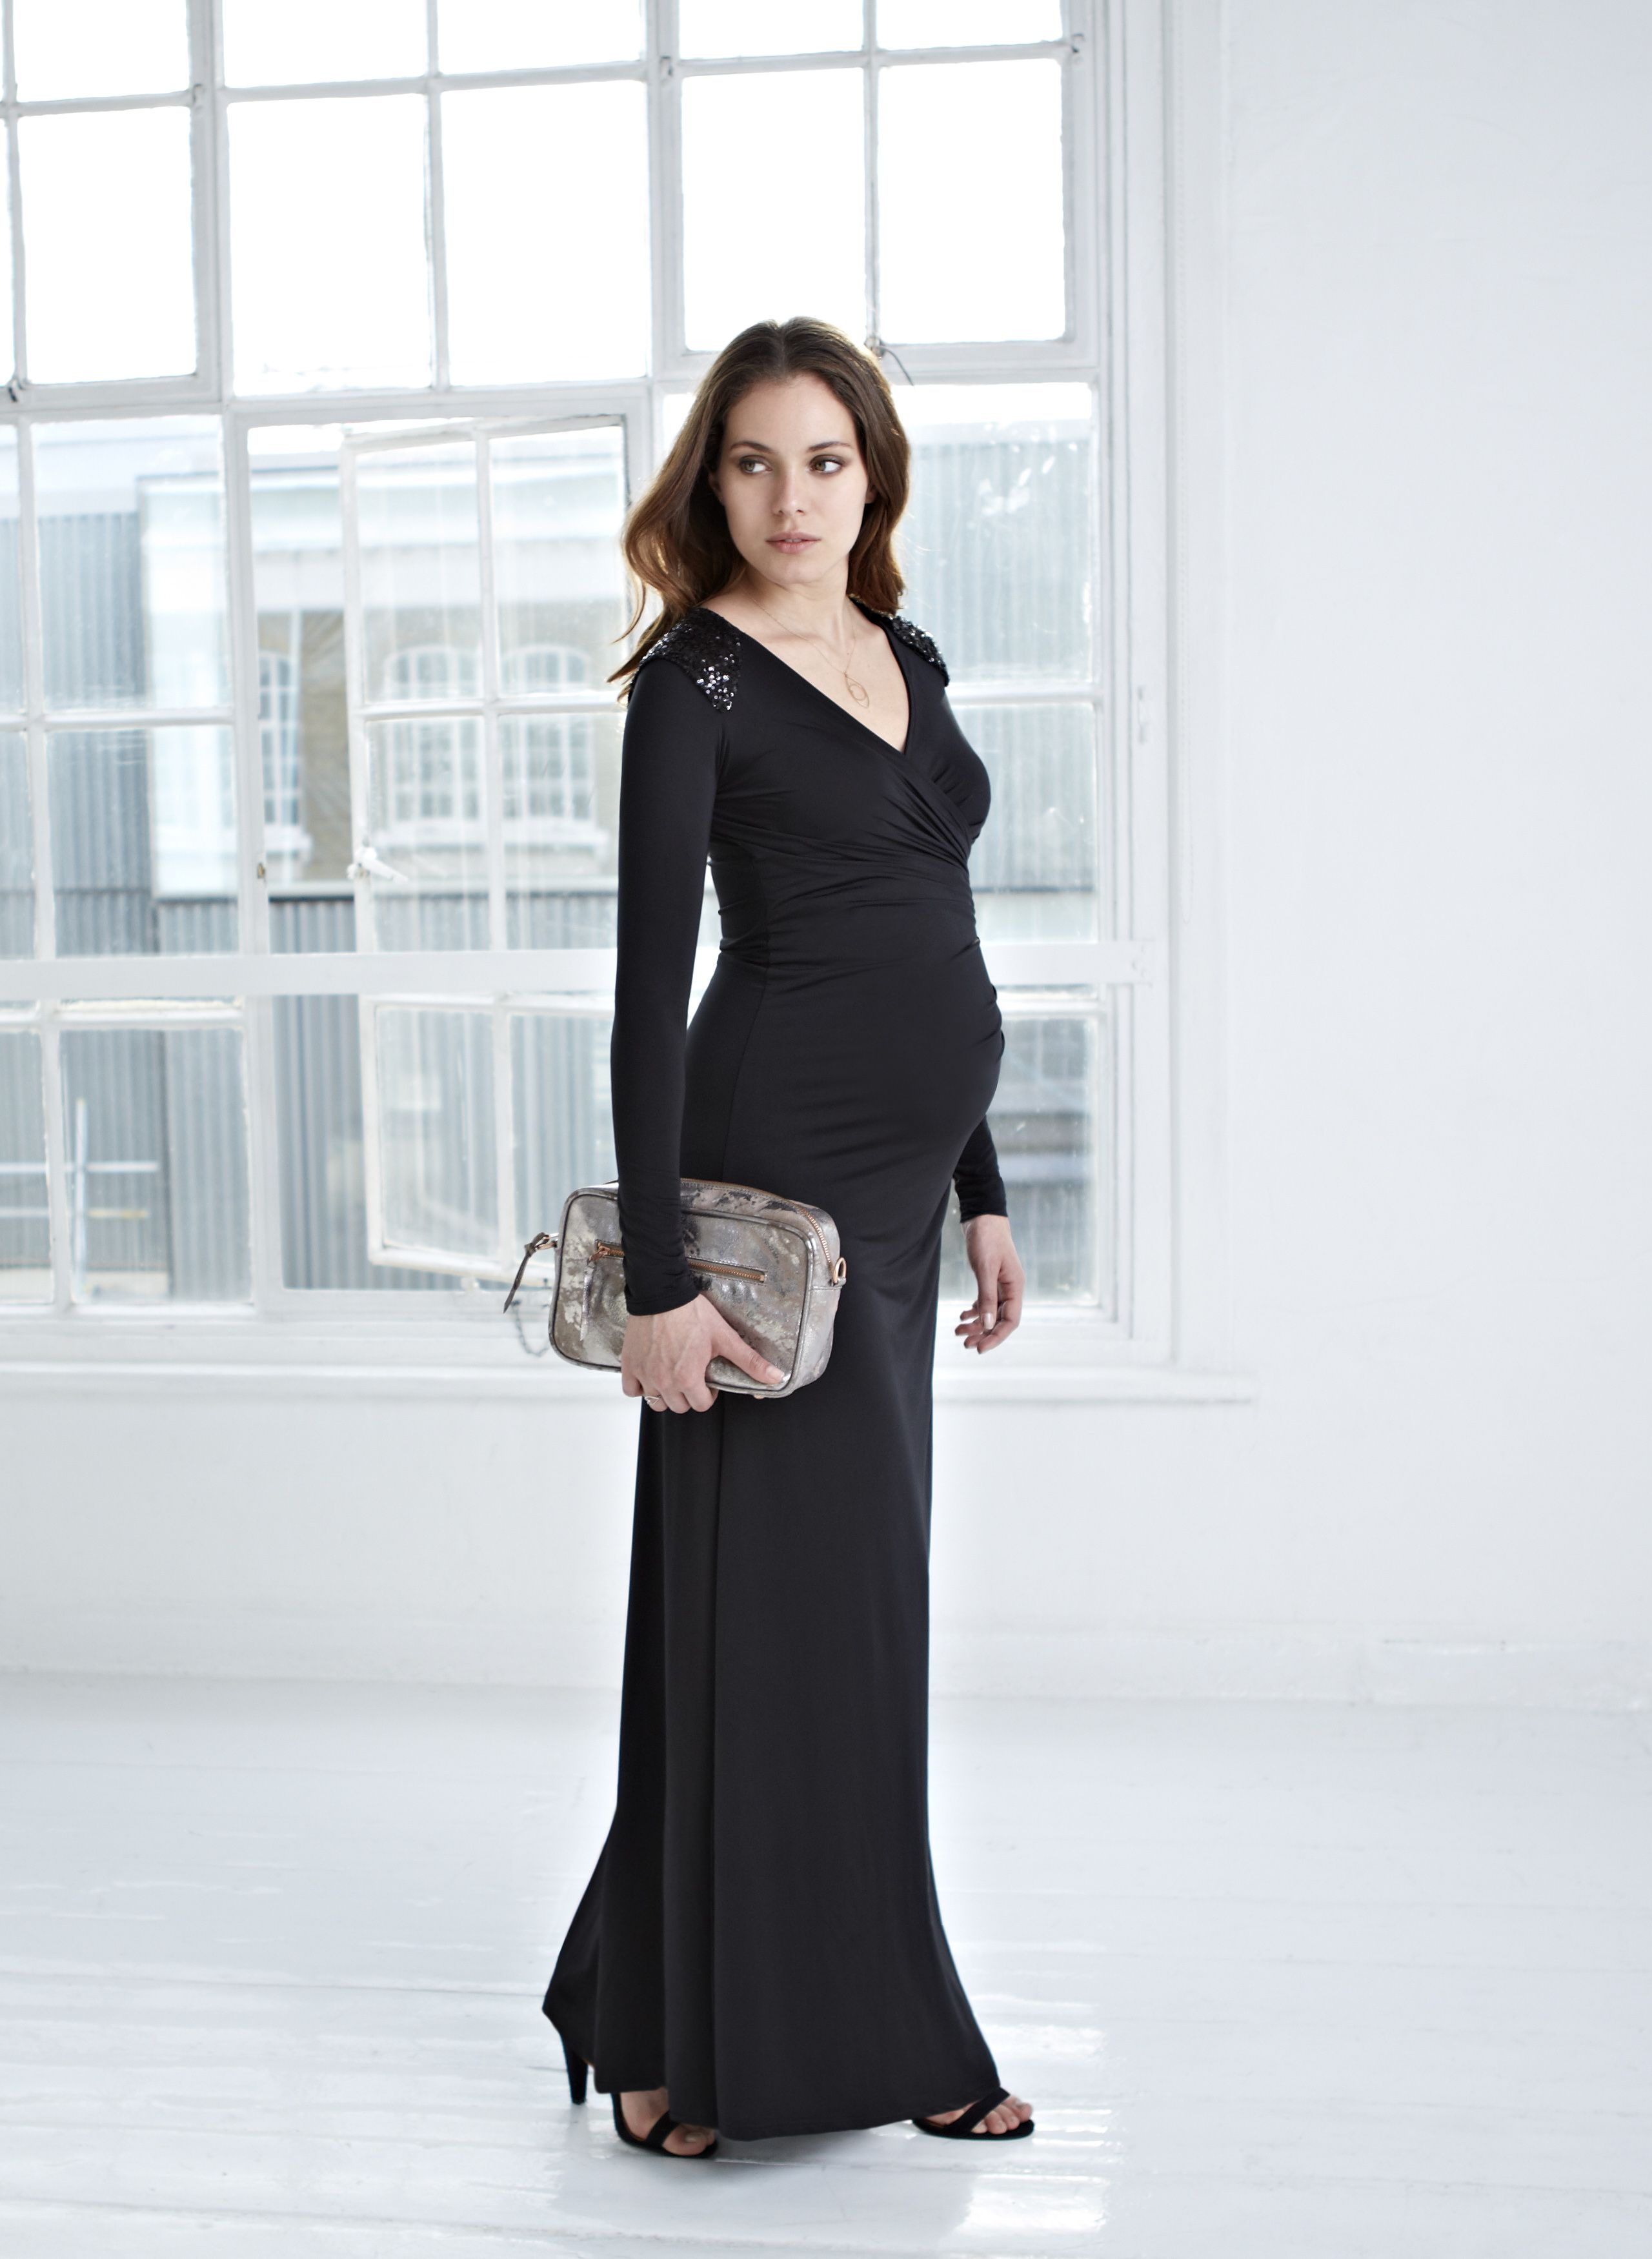 Isabella oliver willow maternity dress h e r s pinterest take up to off a luxury maternity dress expertly designed to fit and flatter your changing shape throughout pregnancy ombrellifo Choice Image